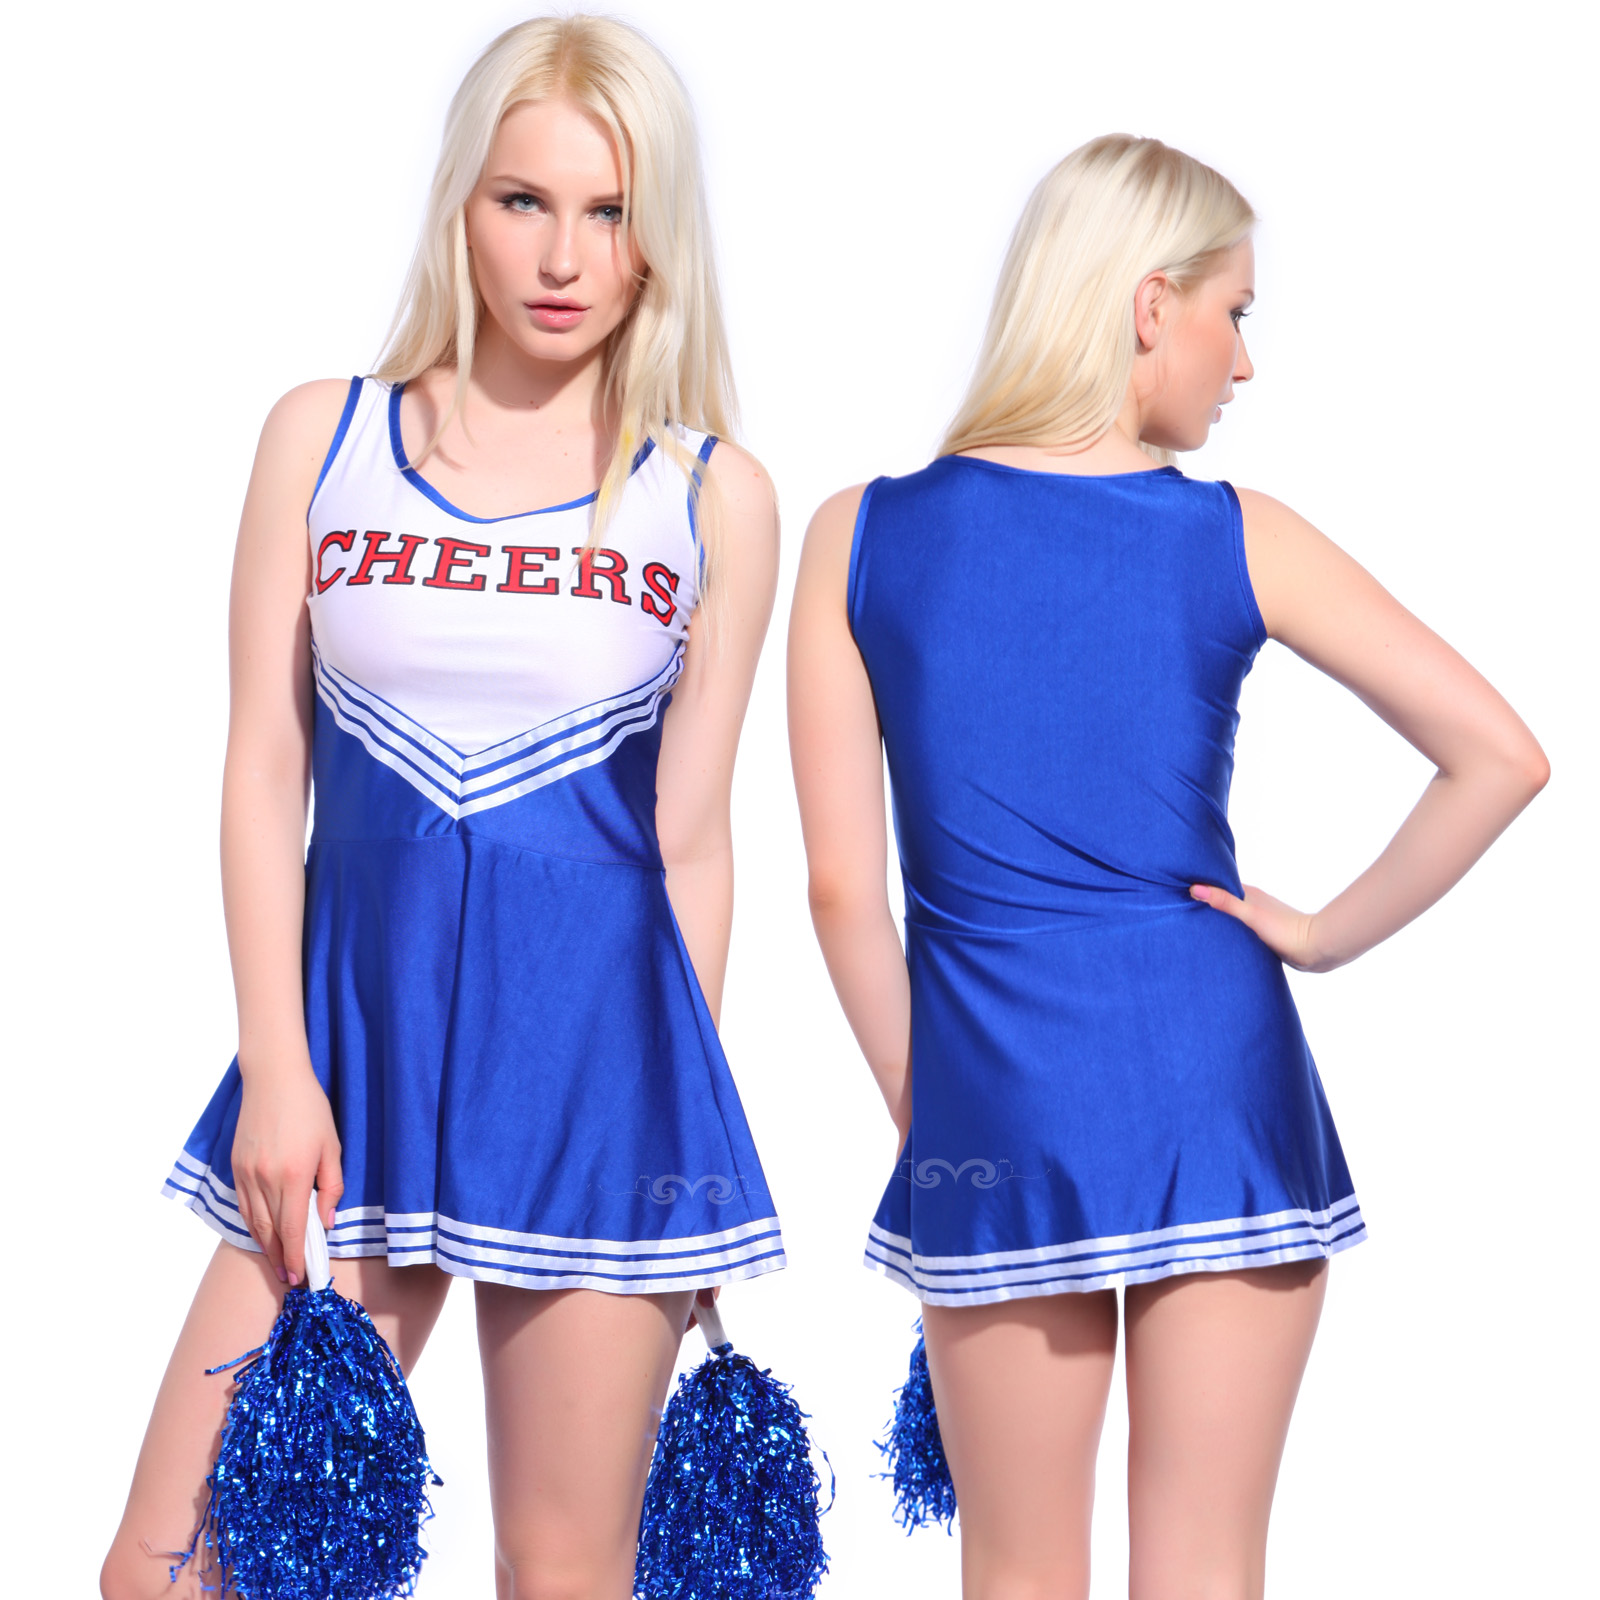 Sexy-Cheerleader-Kostuem-Kleider-Uniform-Cheerleading-Cheer-Leader-5-Farben-GOGO